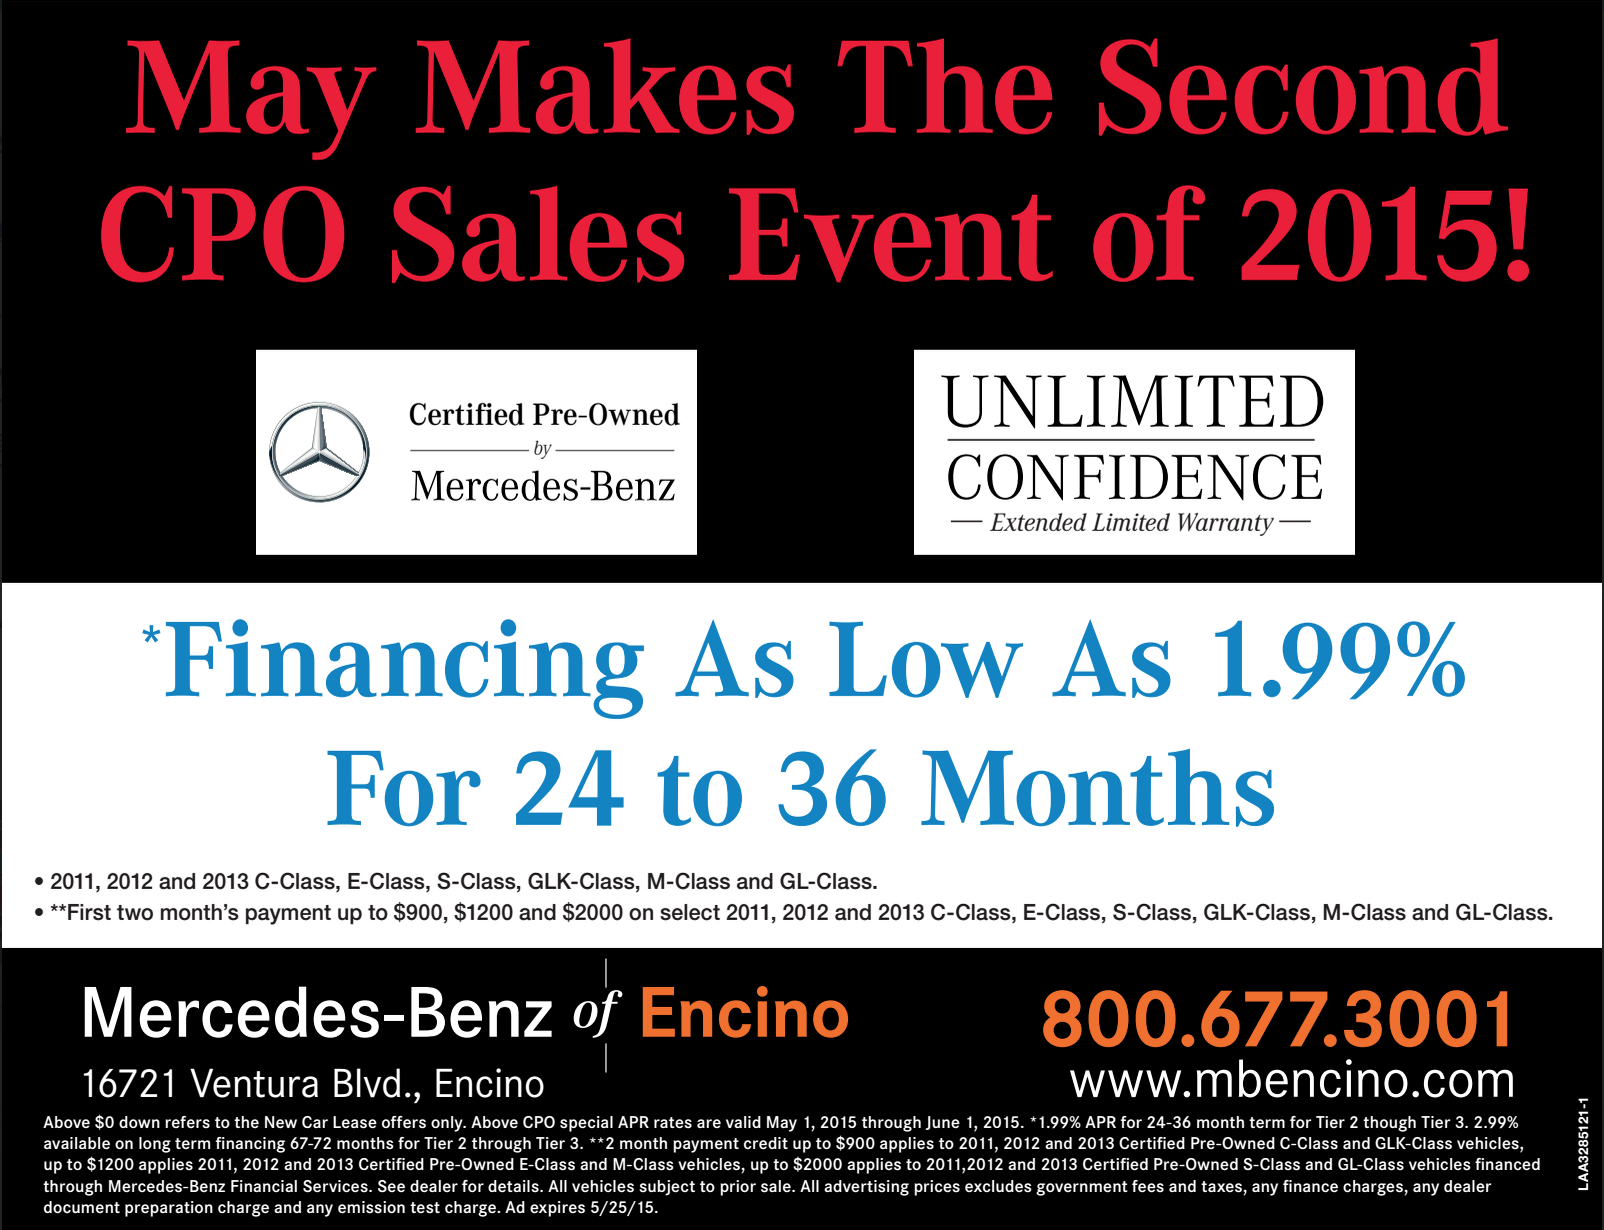 Mercedes Benz for Sale in Los Angeles — Memorial Day Sales Event for